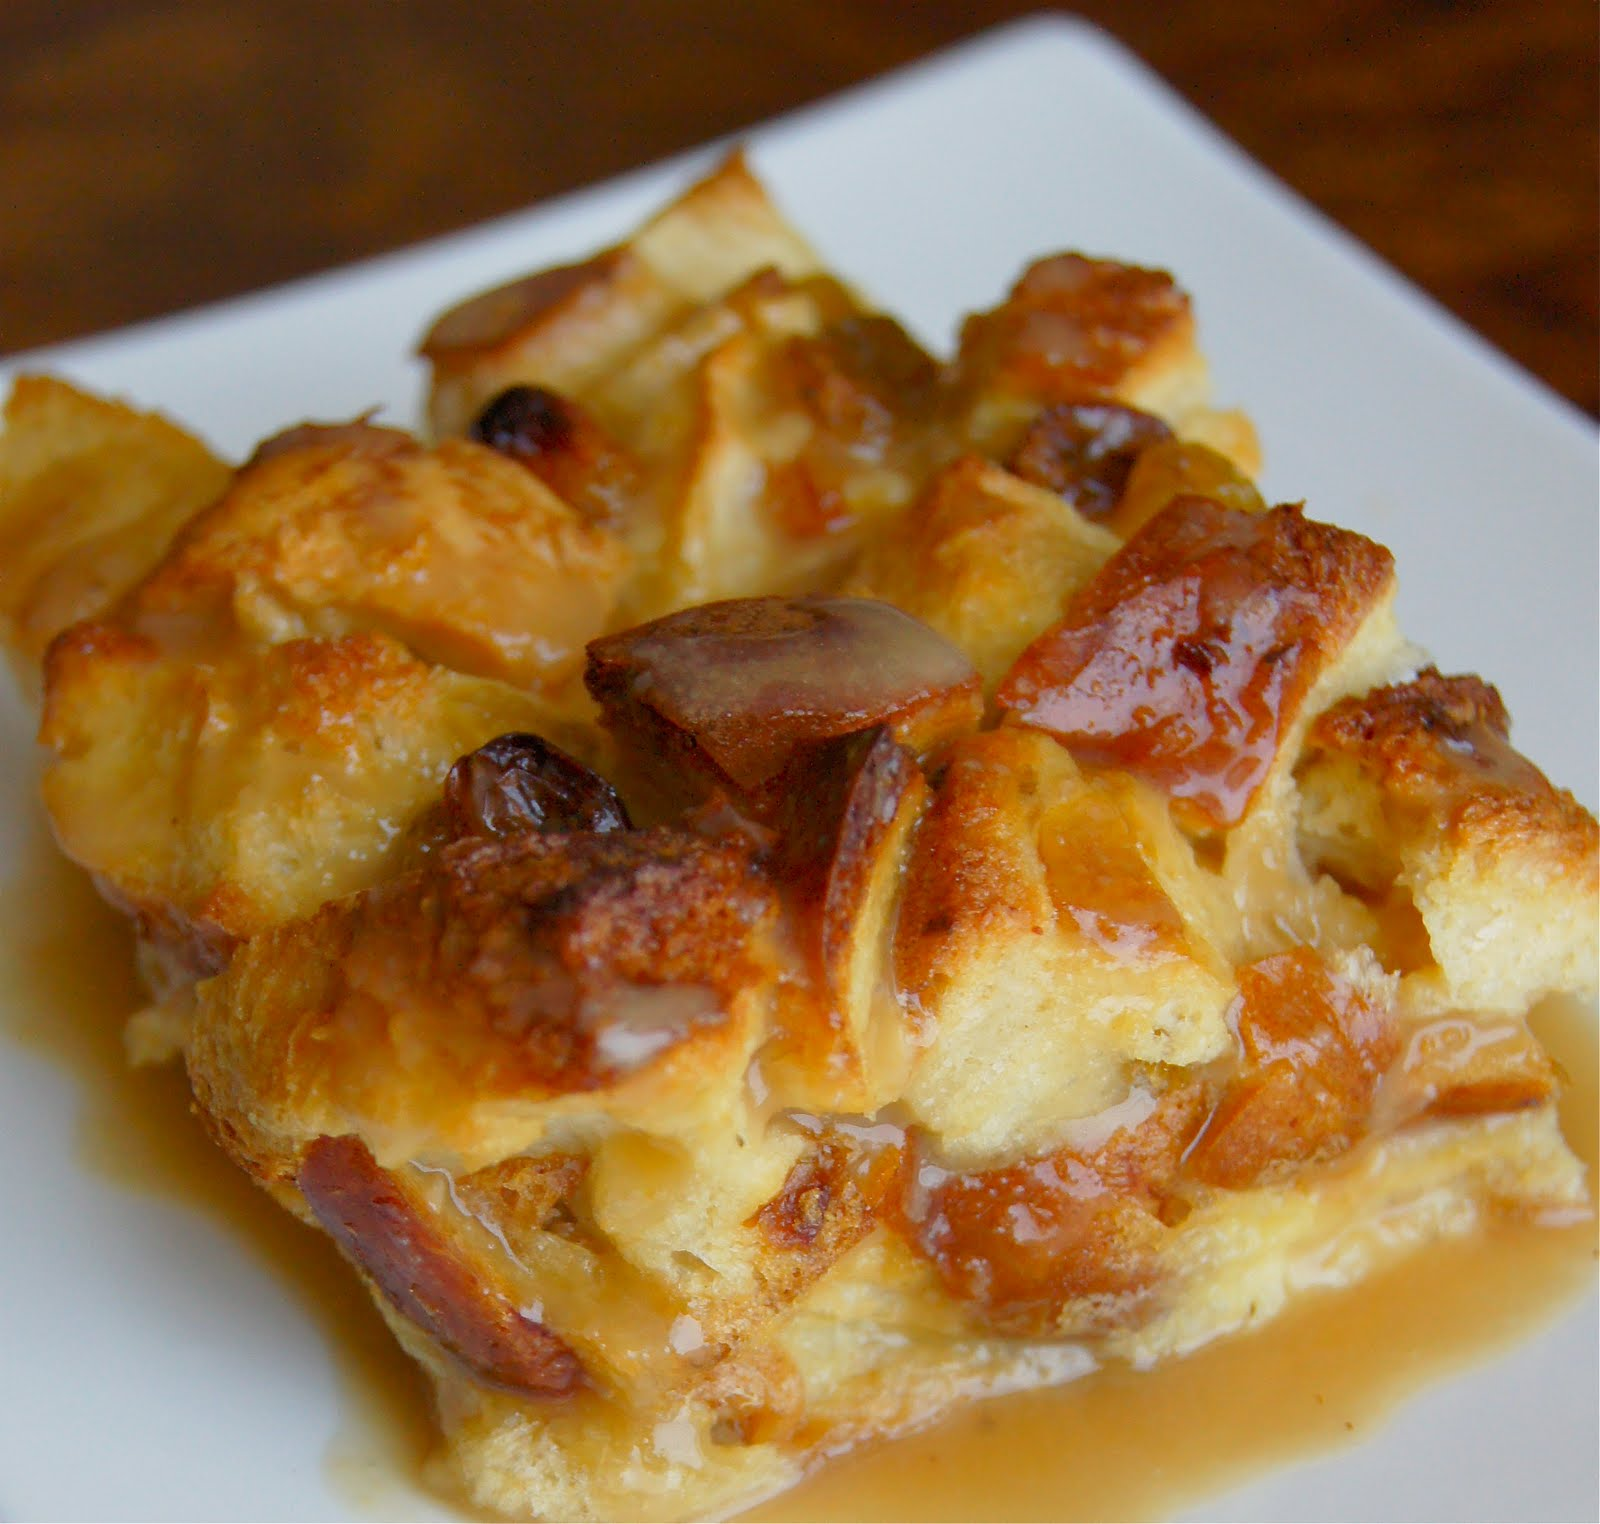 Healthy And Gourmet: Rum And Raisin Bread Pudding With Rum